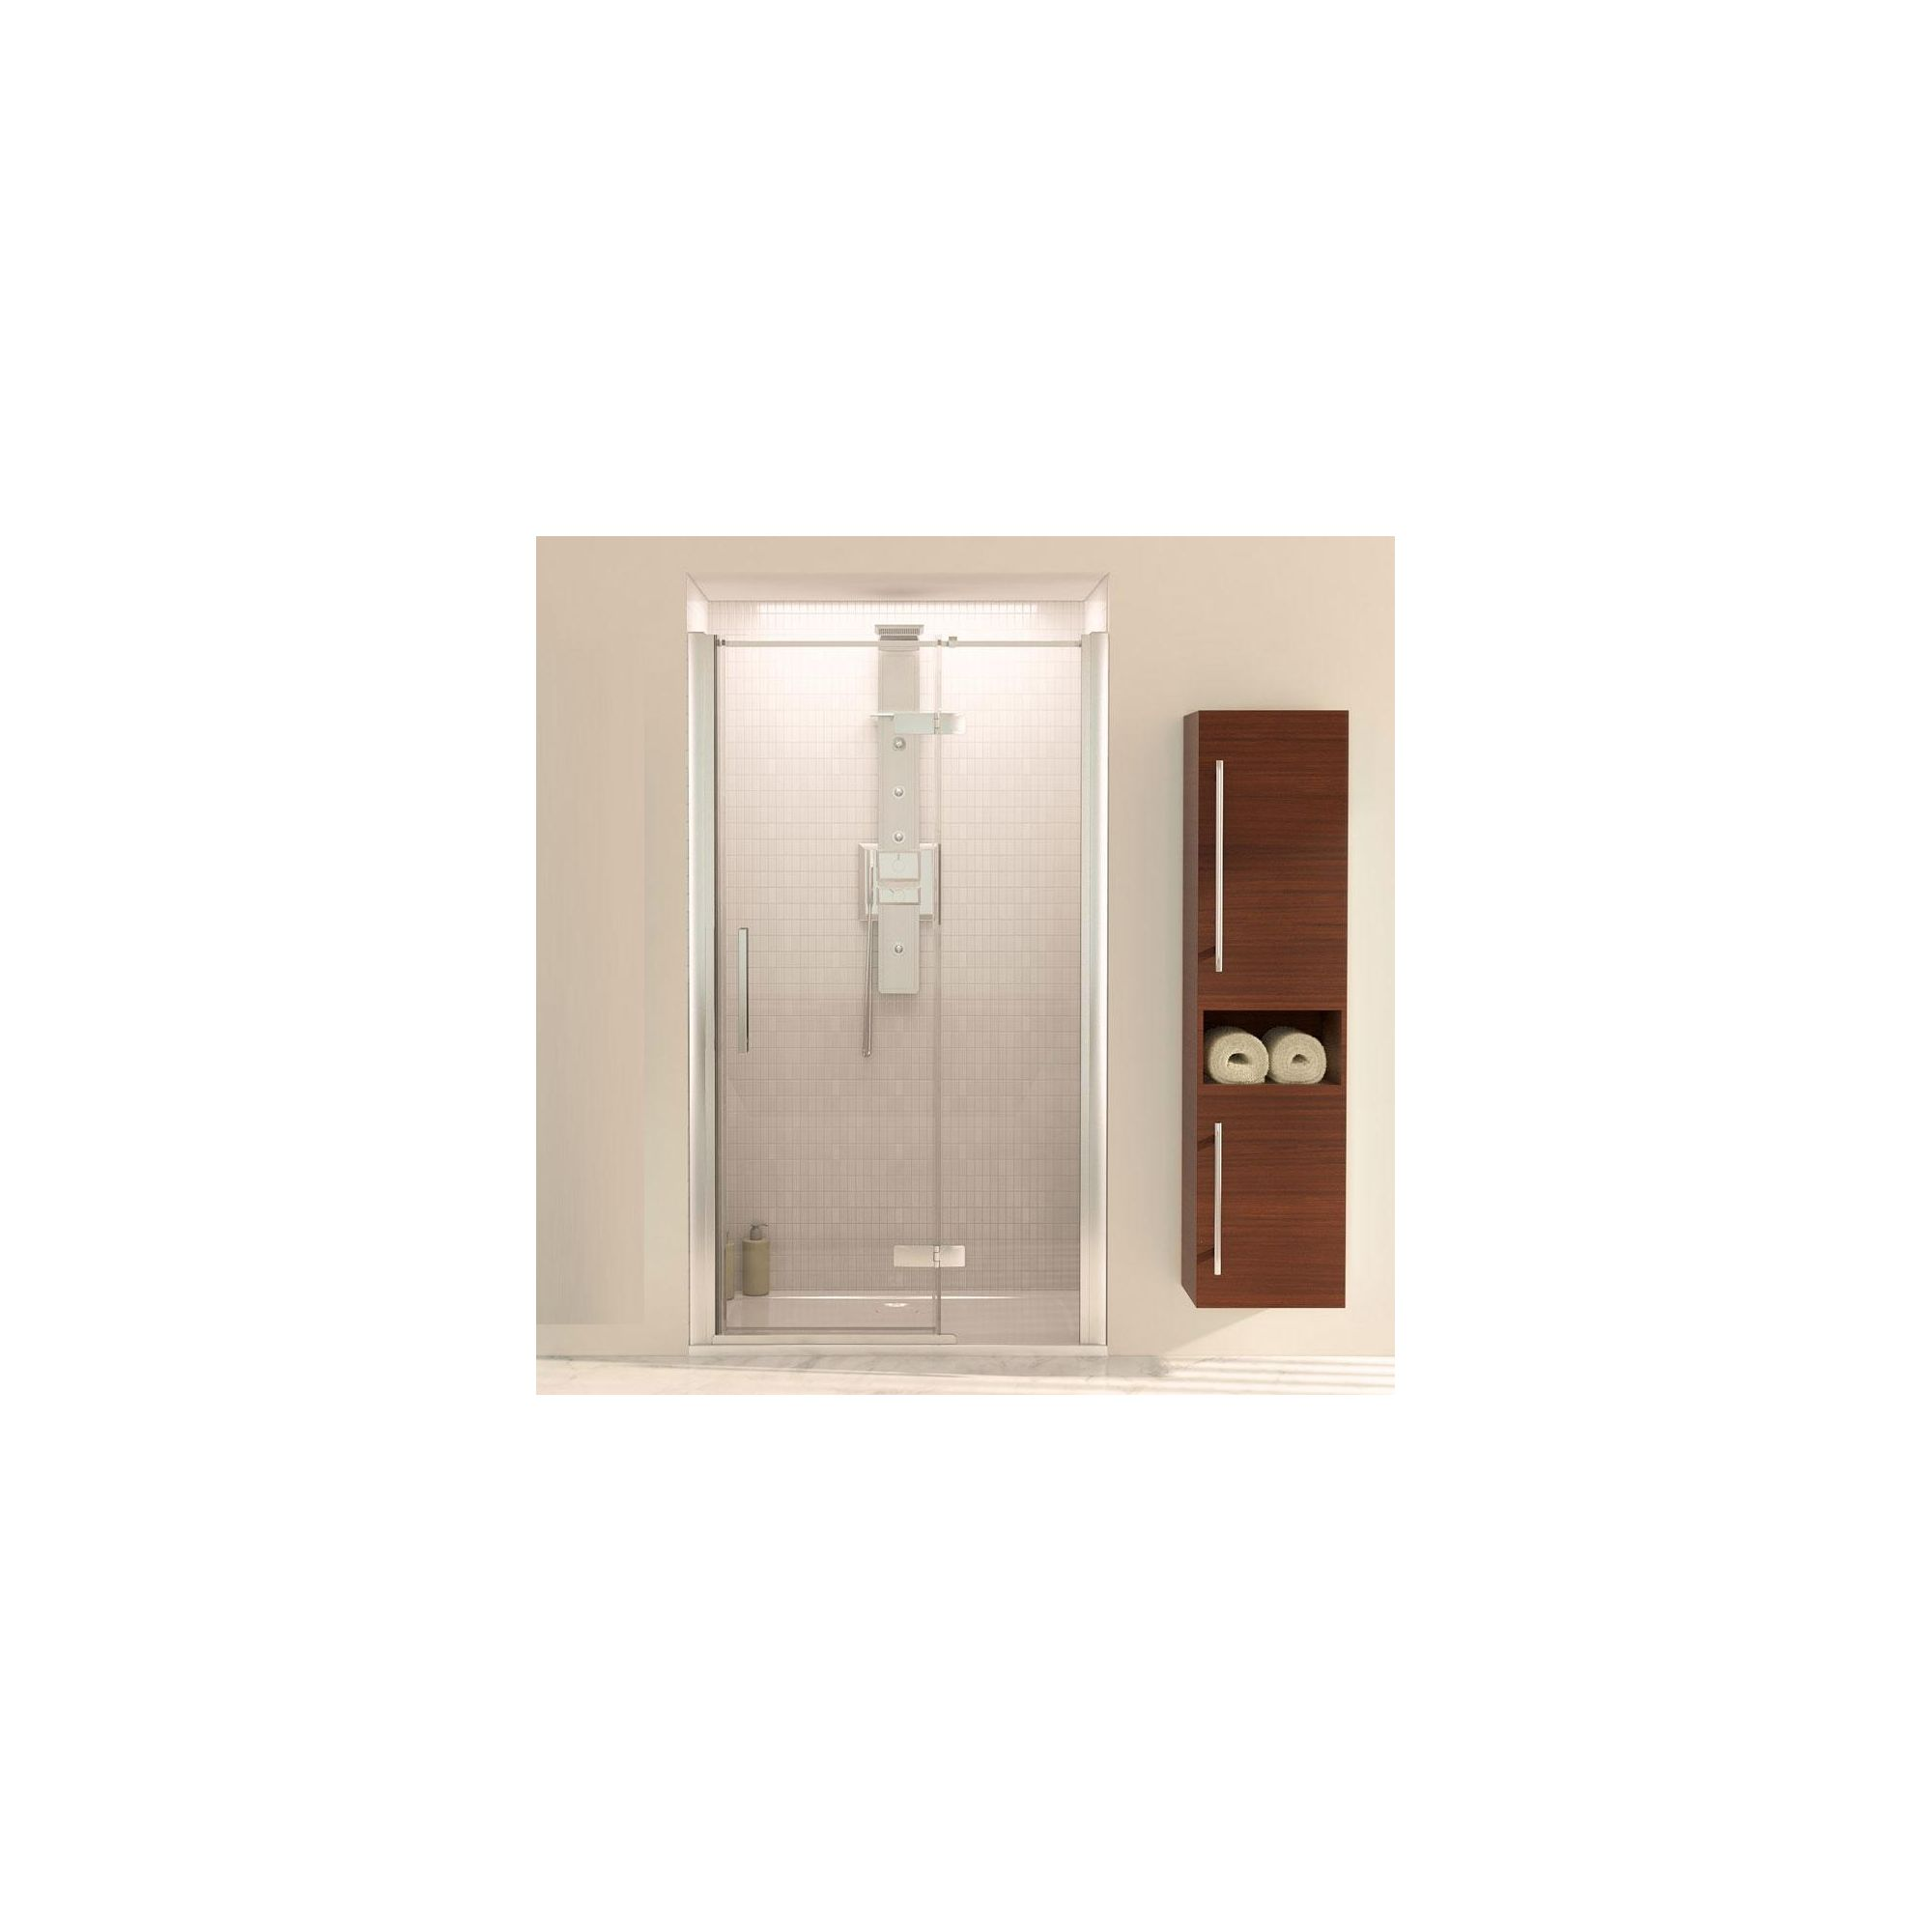 Aqualux AQUA8 Hinge Inline Pivot Shower Door and Side Panel, 1200mm x 760mm, Polished Silver Frame, 8mm Glass at Tesco Direct